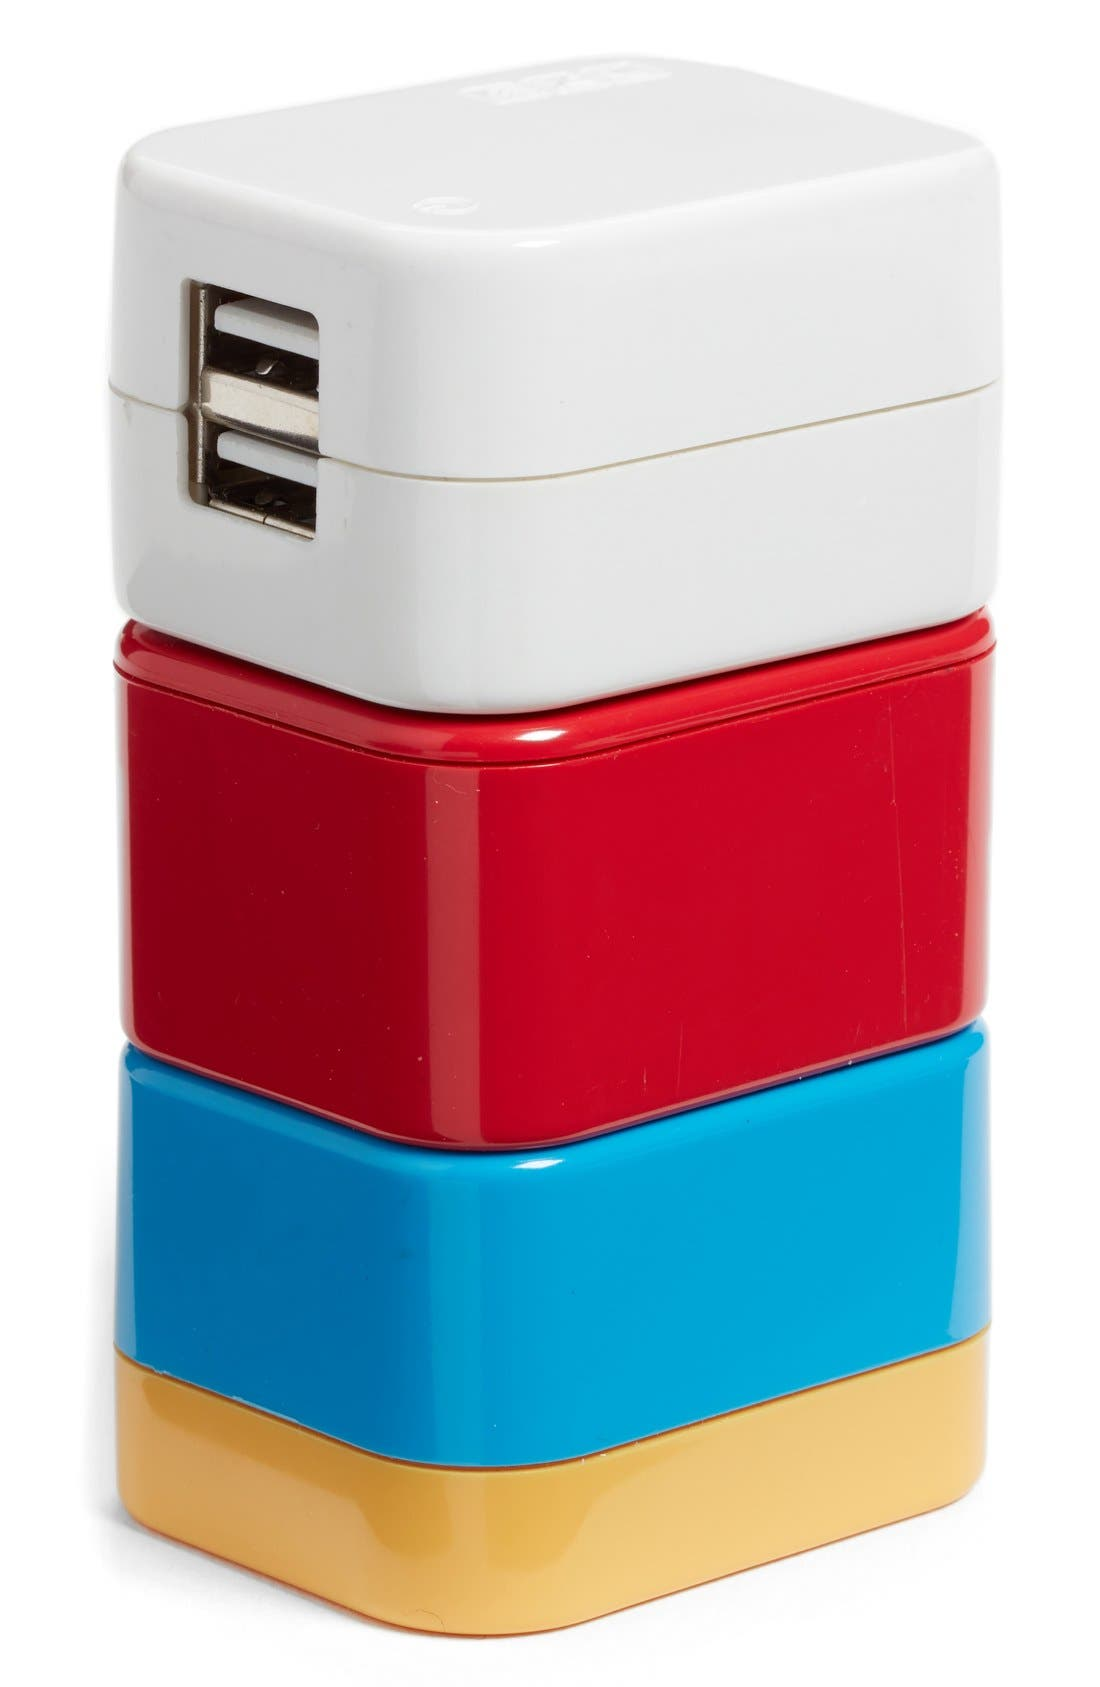 5-in-1 Universal Travel Adapter,                             Main thumbnail 1, color,                             Multi